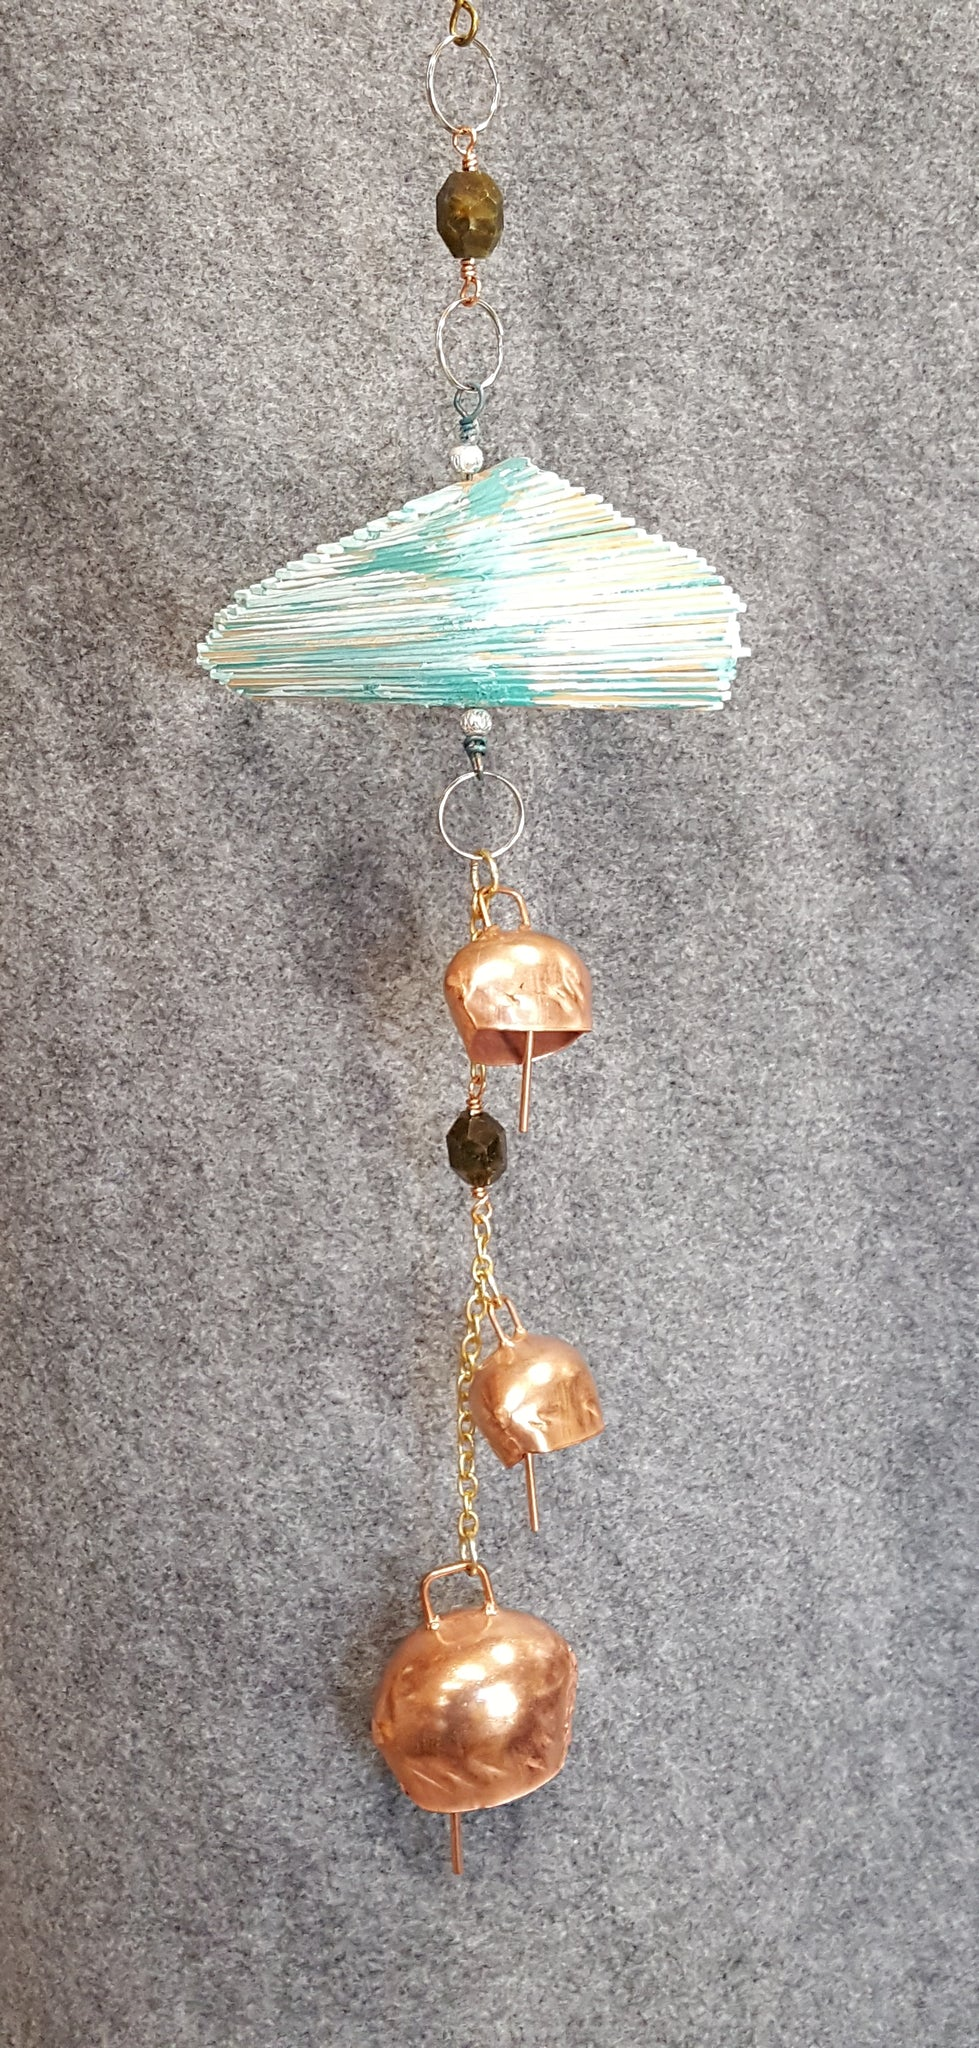 CH137 Wood Spiral Wind Chime - Trinkets & Things Handmade with Aloha